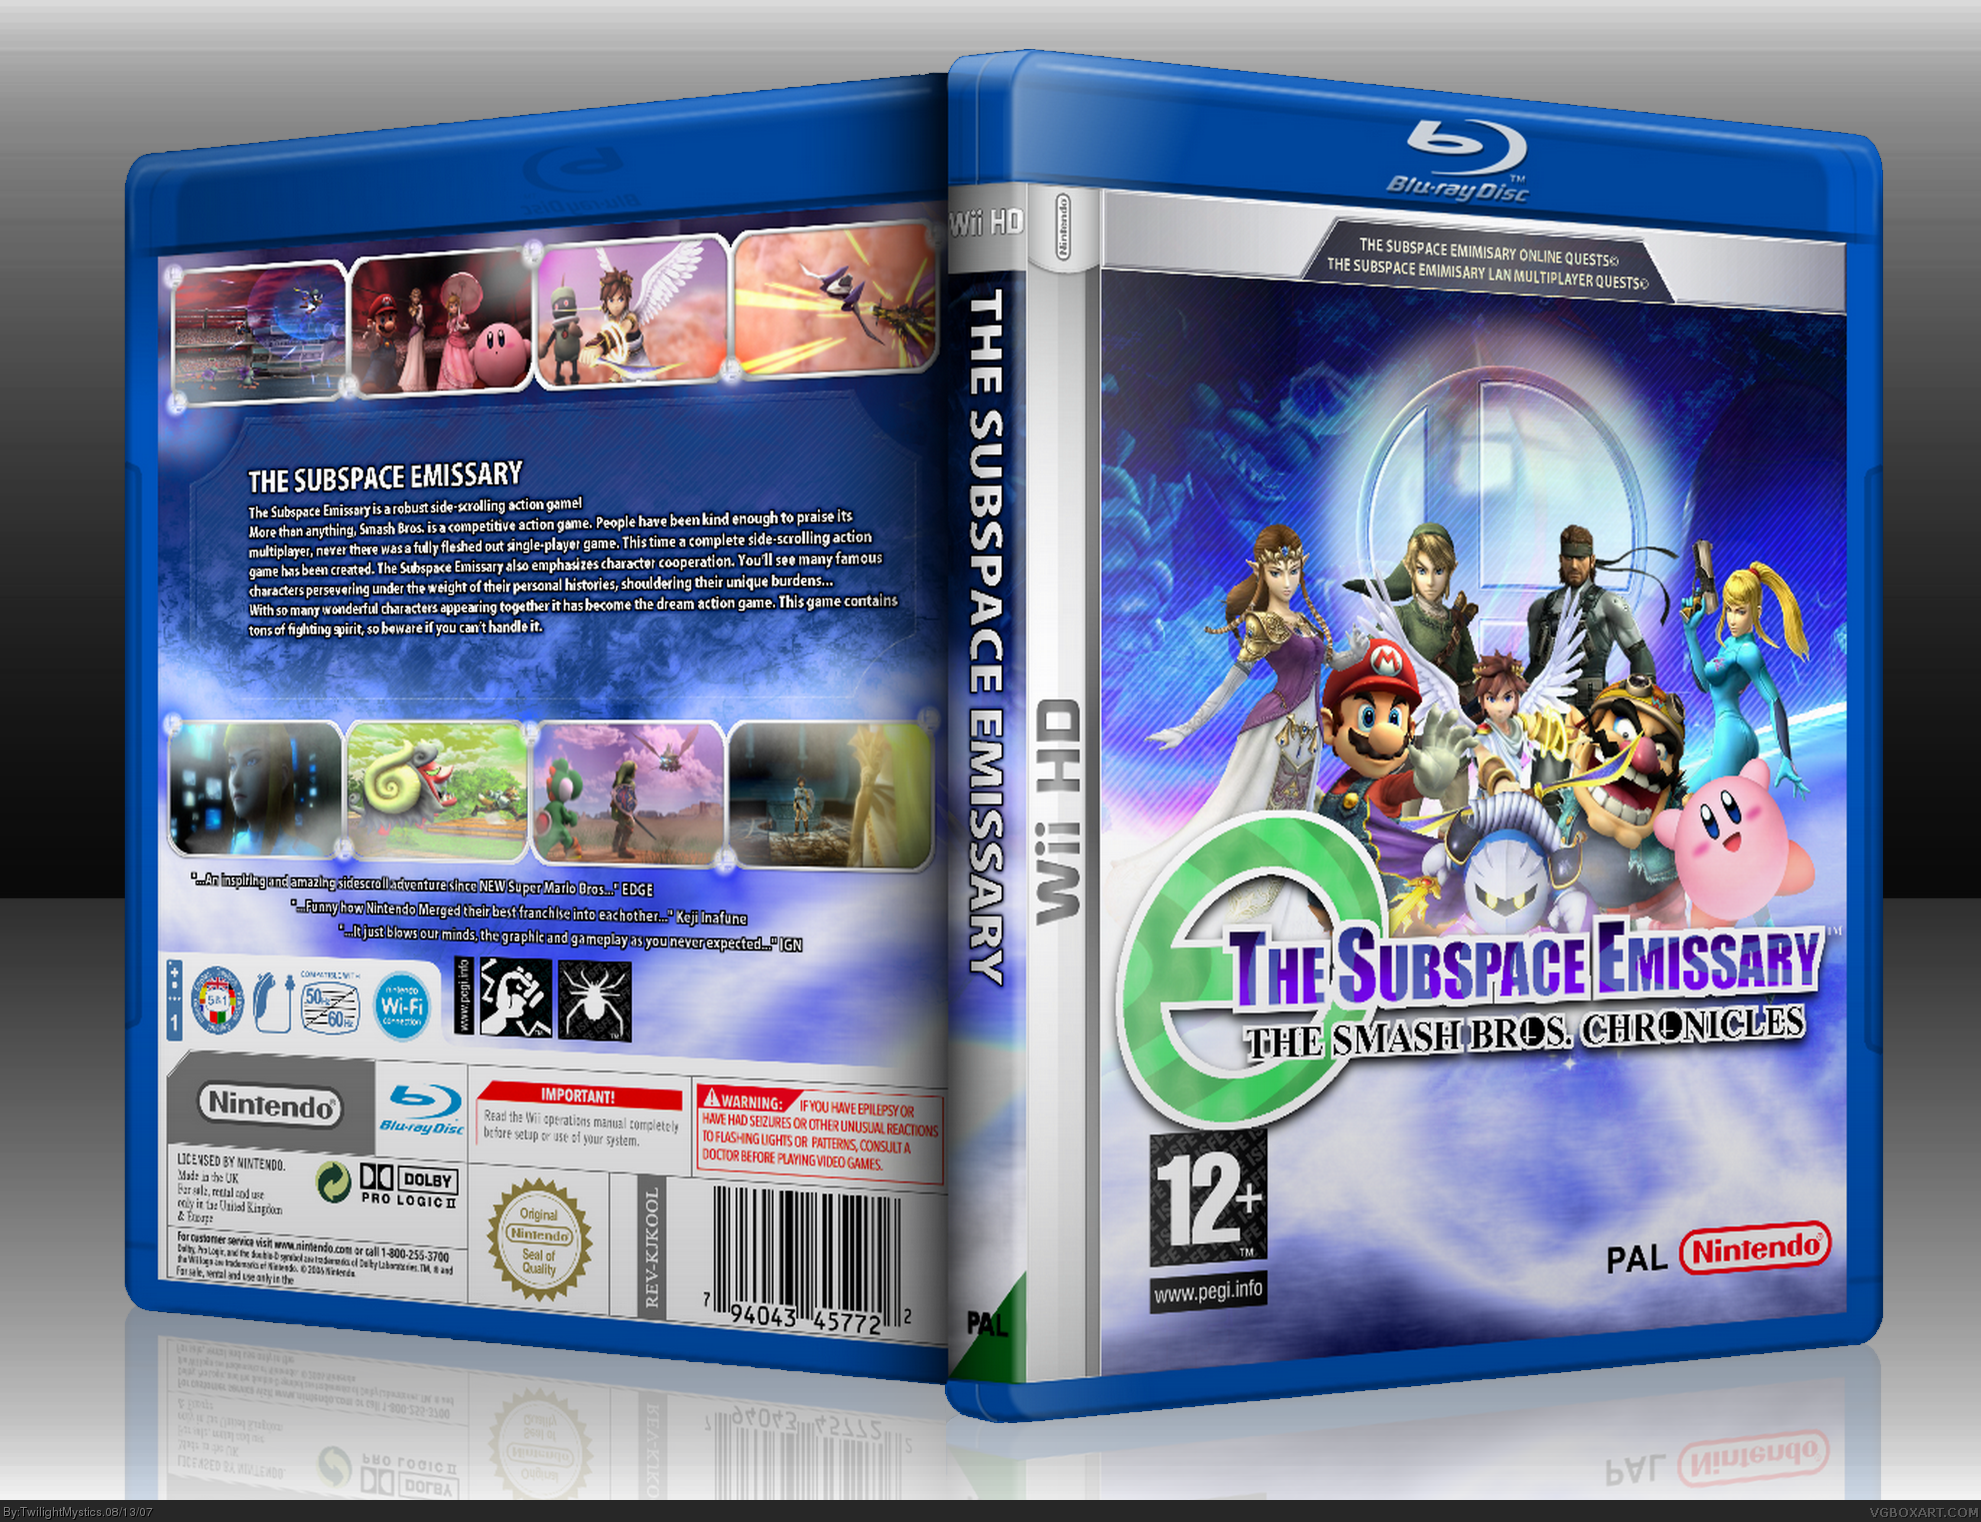 The Subspace Emissary Wiihd Wii Box Art Cover By Twilightmystics